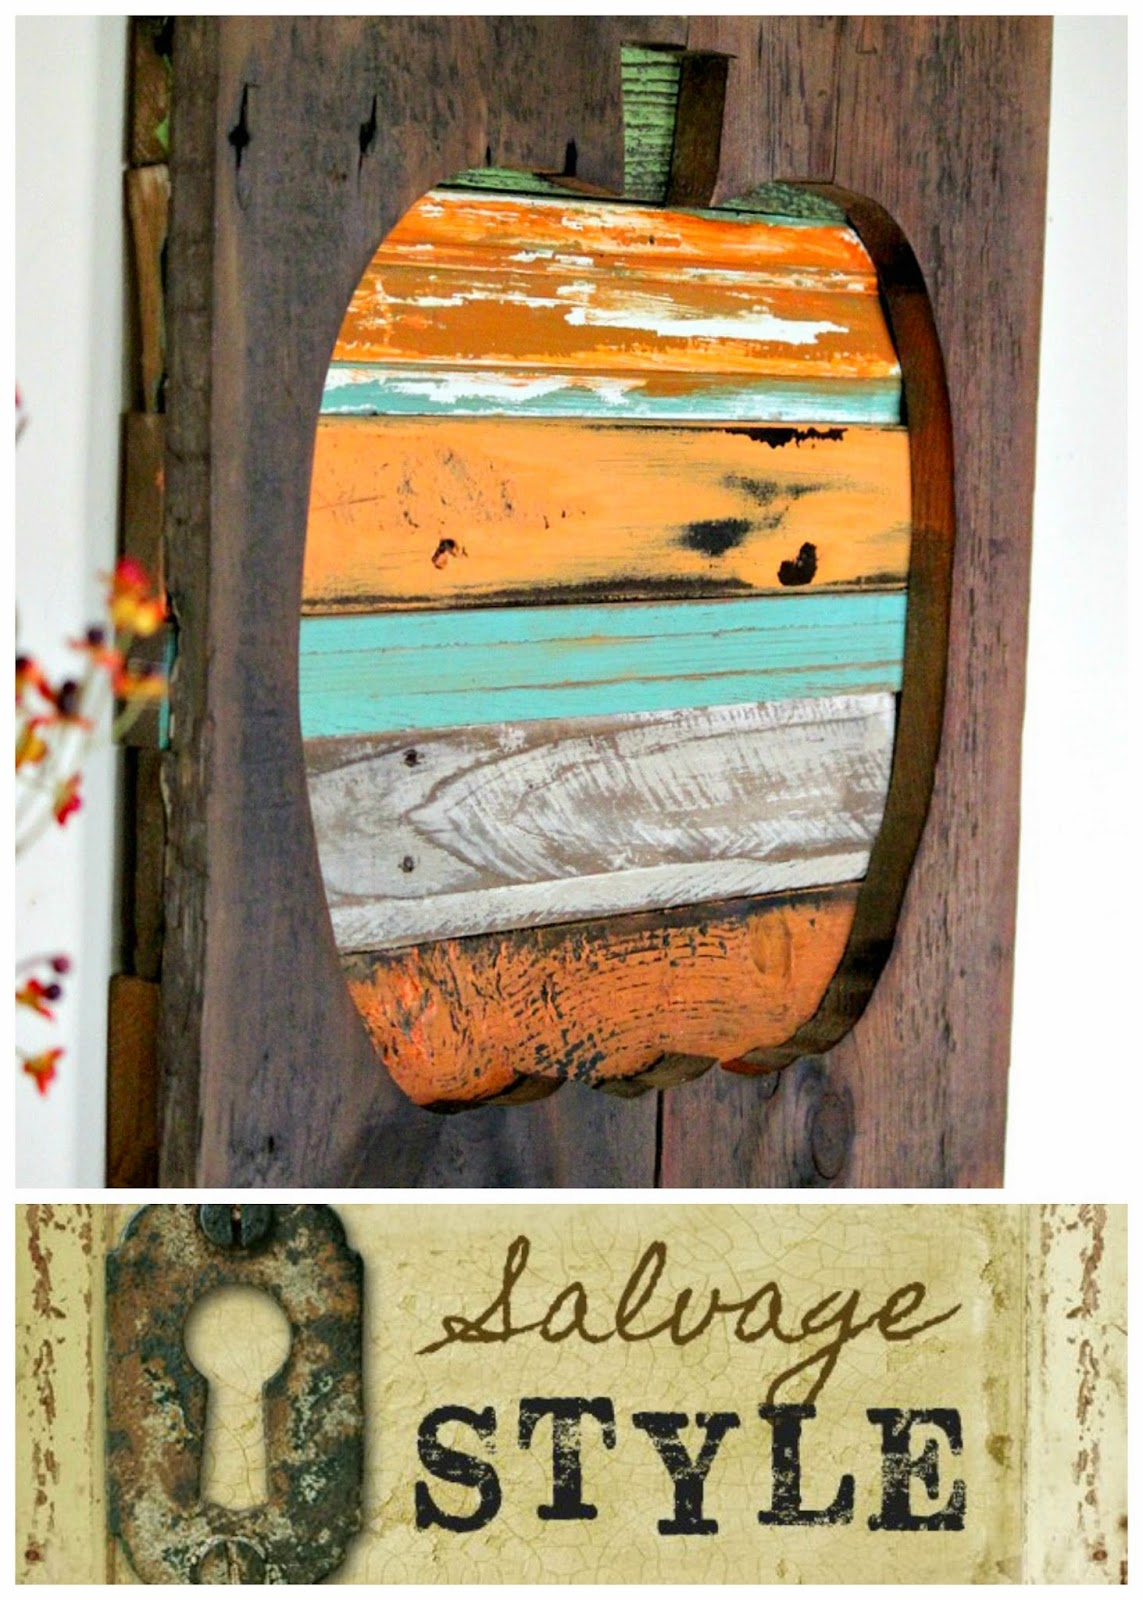 salvaged reclaimed wood pumpkin http://bec4-beyondthepicketfence.blogspot.com/2014/10/salvage-style-reclaimed-wood-pumpkin.html